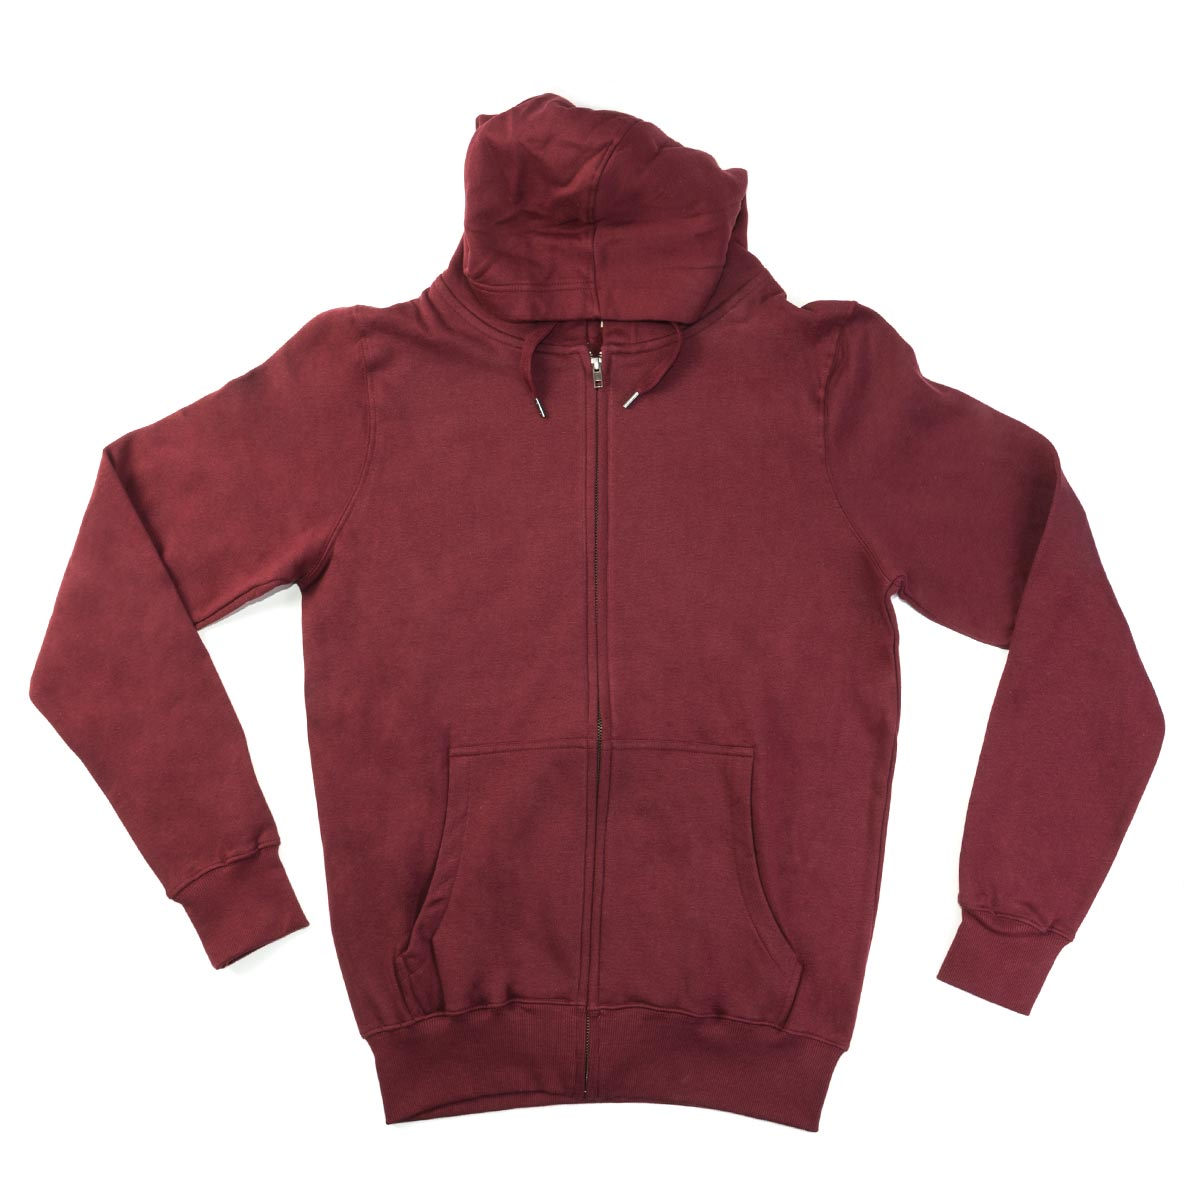 Earth Positive Zip-Up Hoodies